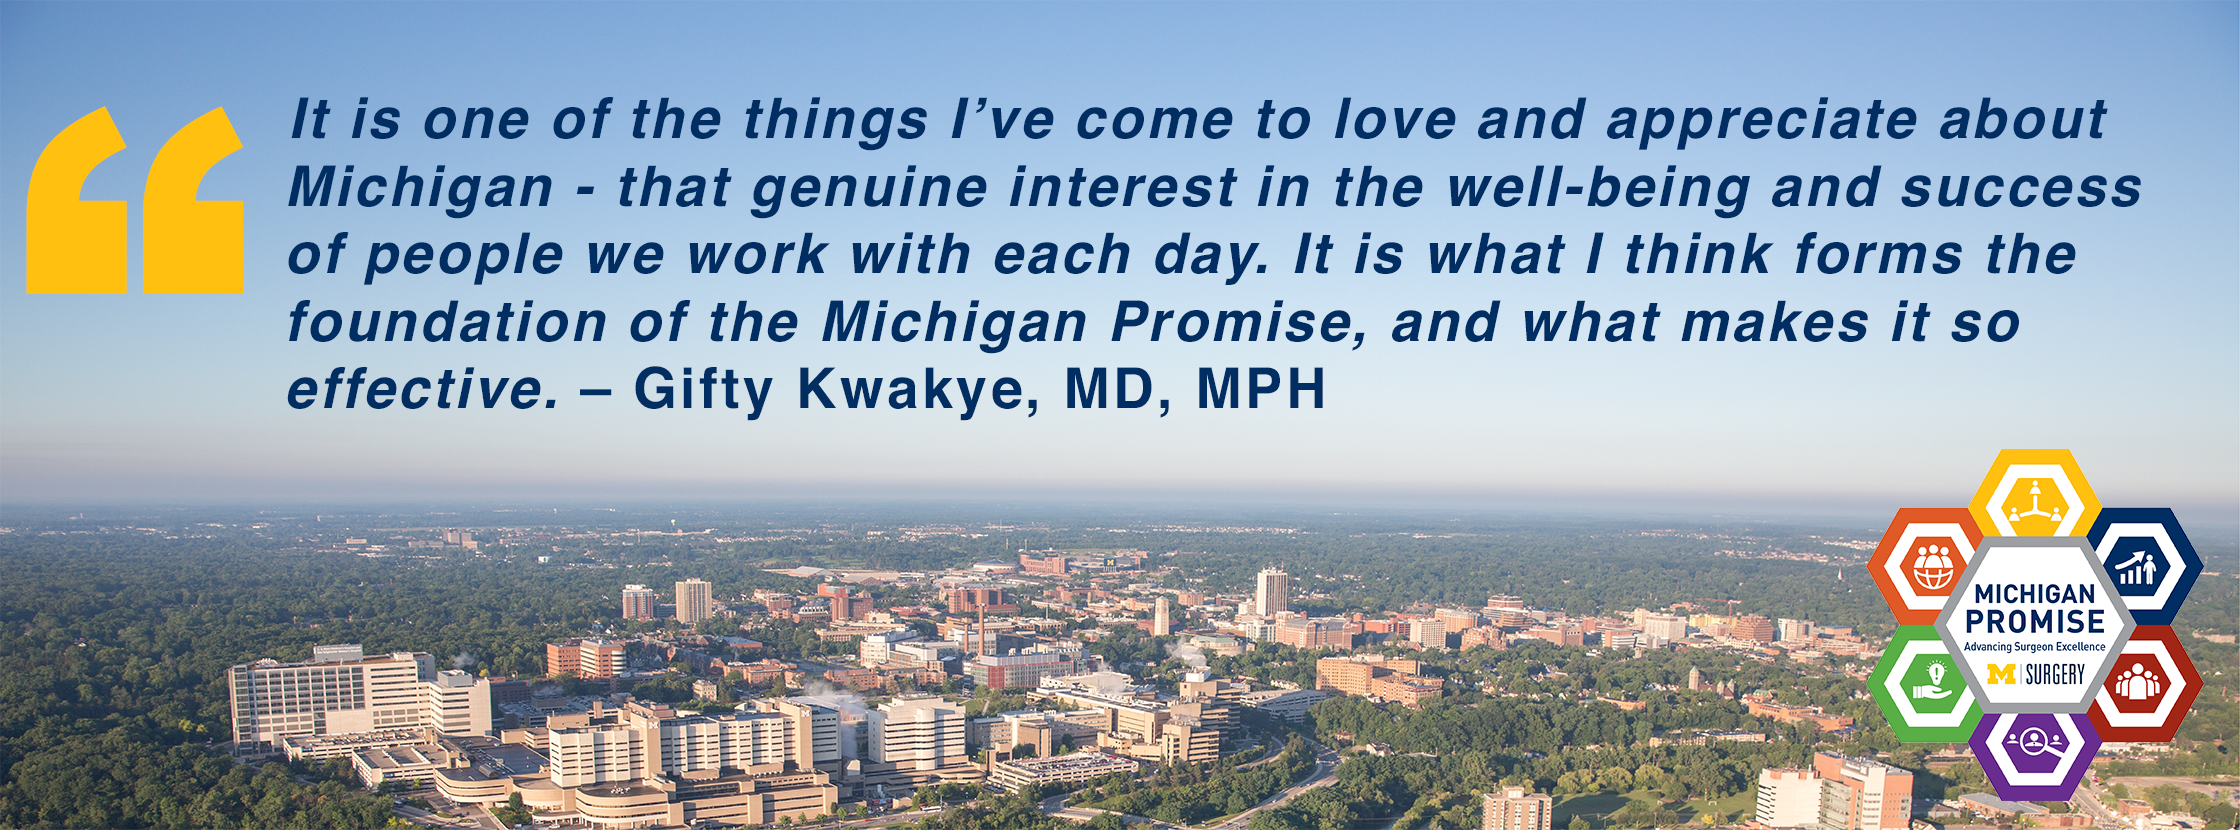 It is one of the things I've come to love and appreciate about Michigan – that genuine interest in the well-being and success of people we work with each day. It is what I think forms the foundation of the Michigan Promise, and what makes it so effective.